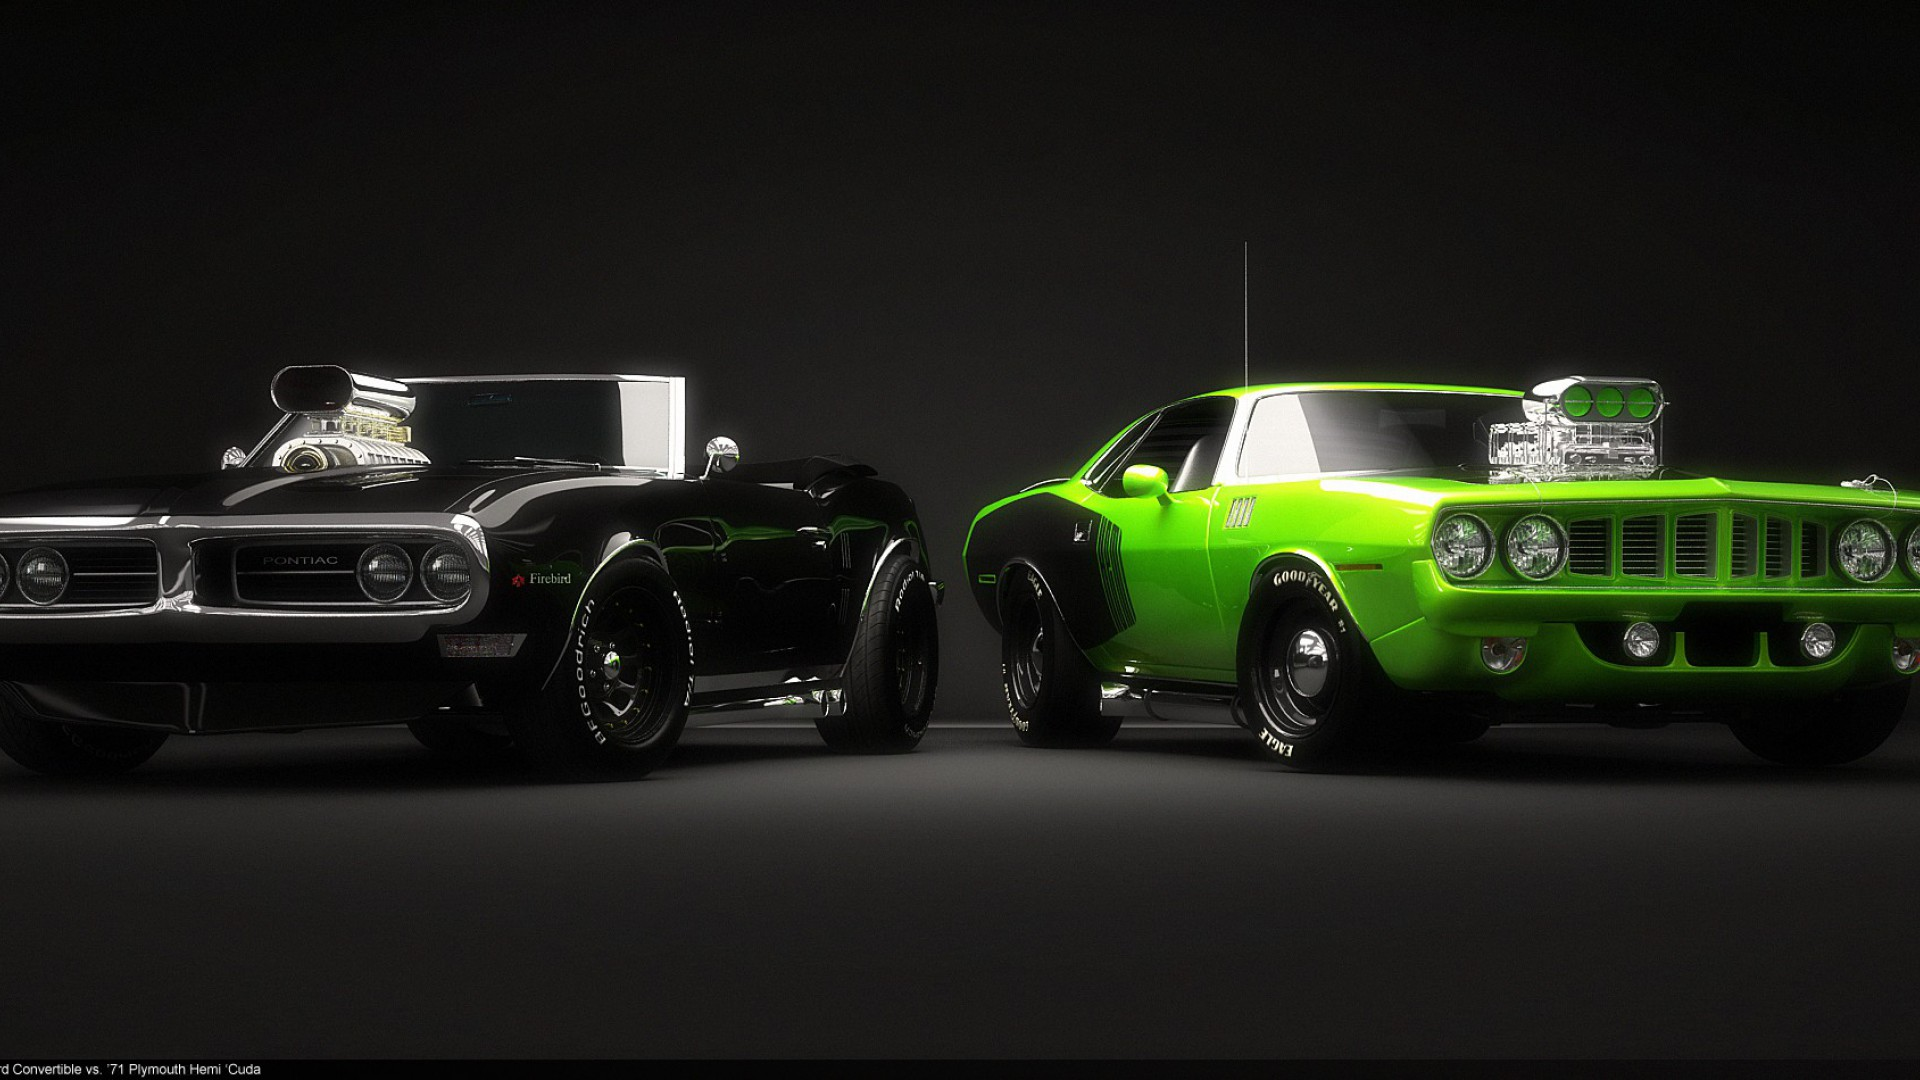 sick wallpapers hd cars - photo #8